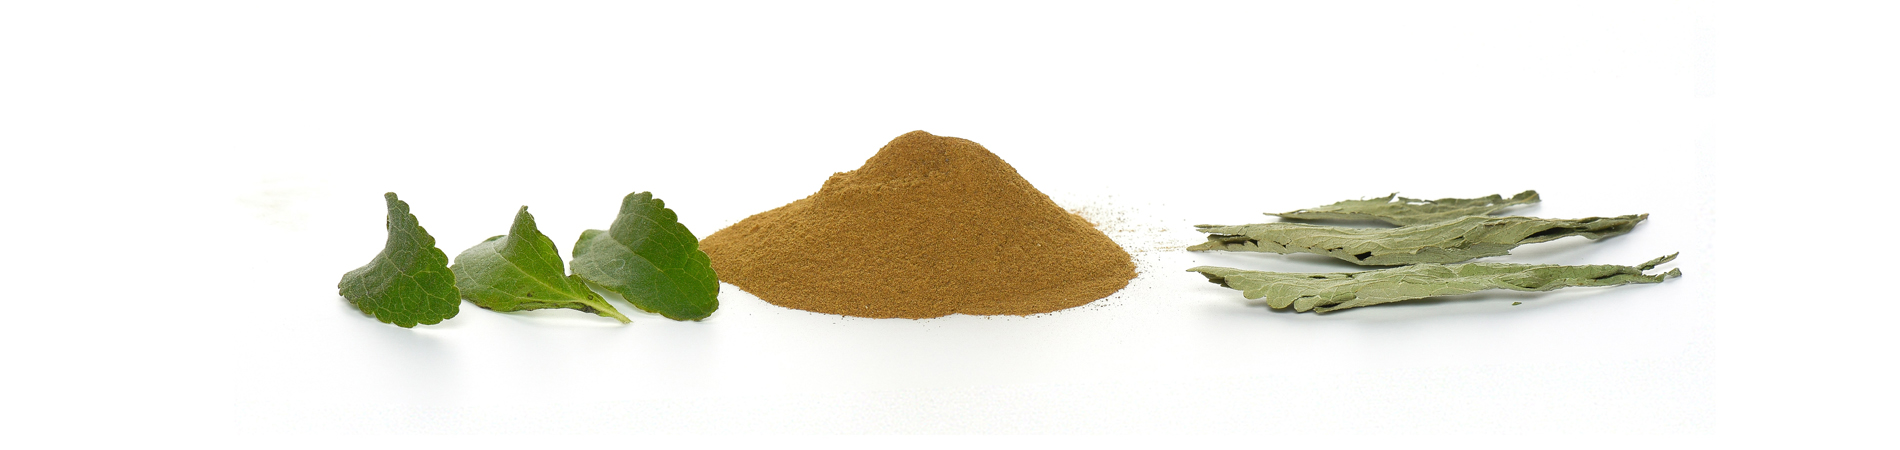 Stevia instant - 100% natural organic quality without additives.